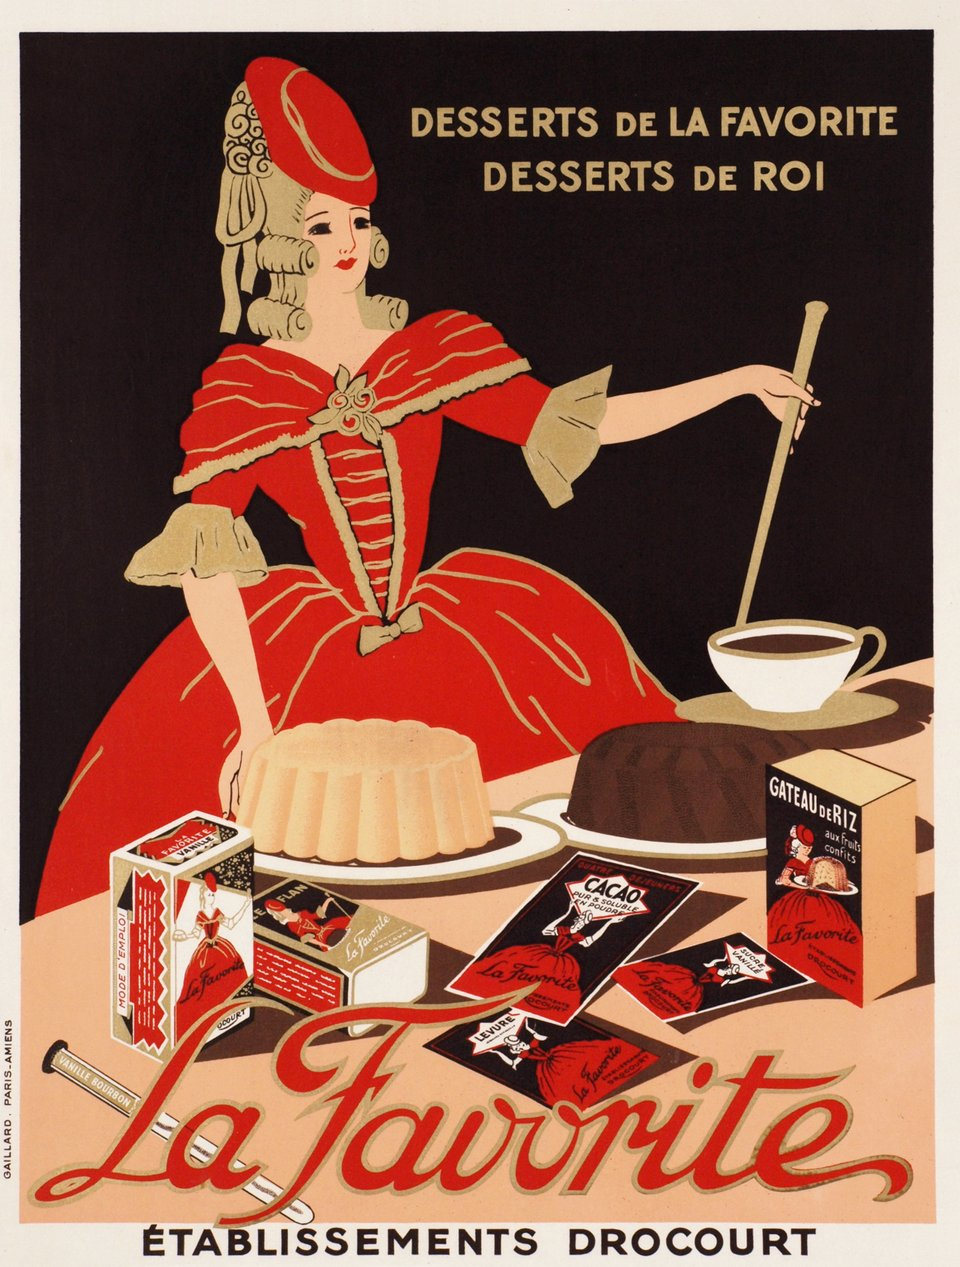 La Favorite, desserts de la favorite, desserts de roi – Affiche ancienne –  ANONYME – 1930